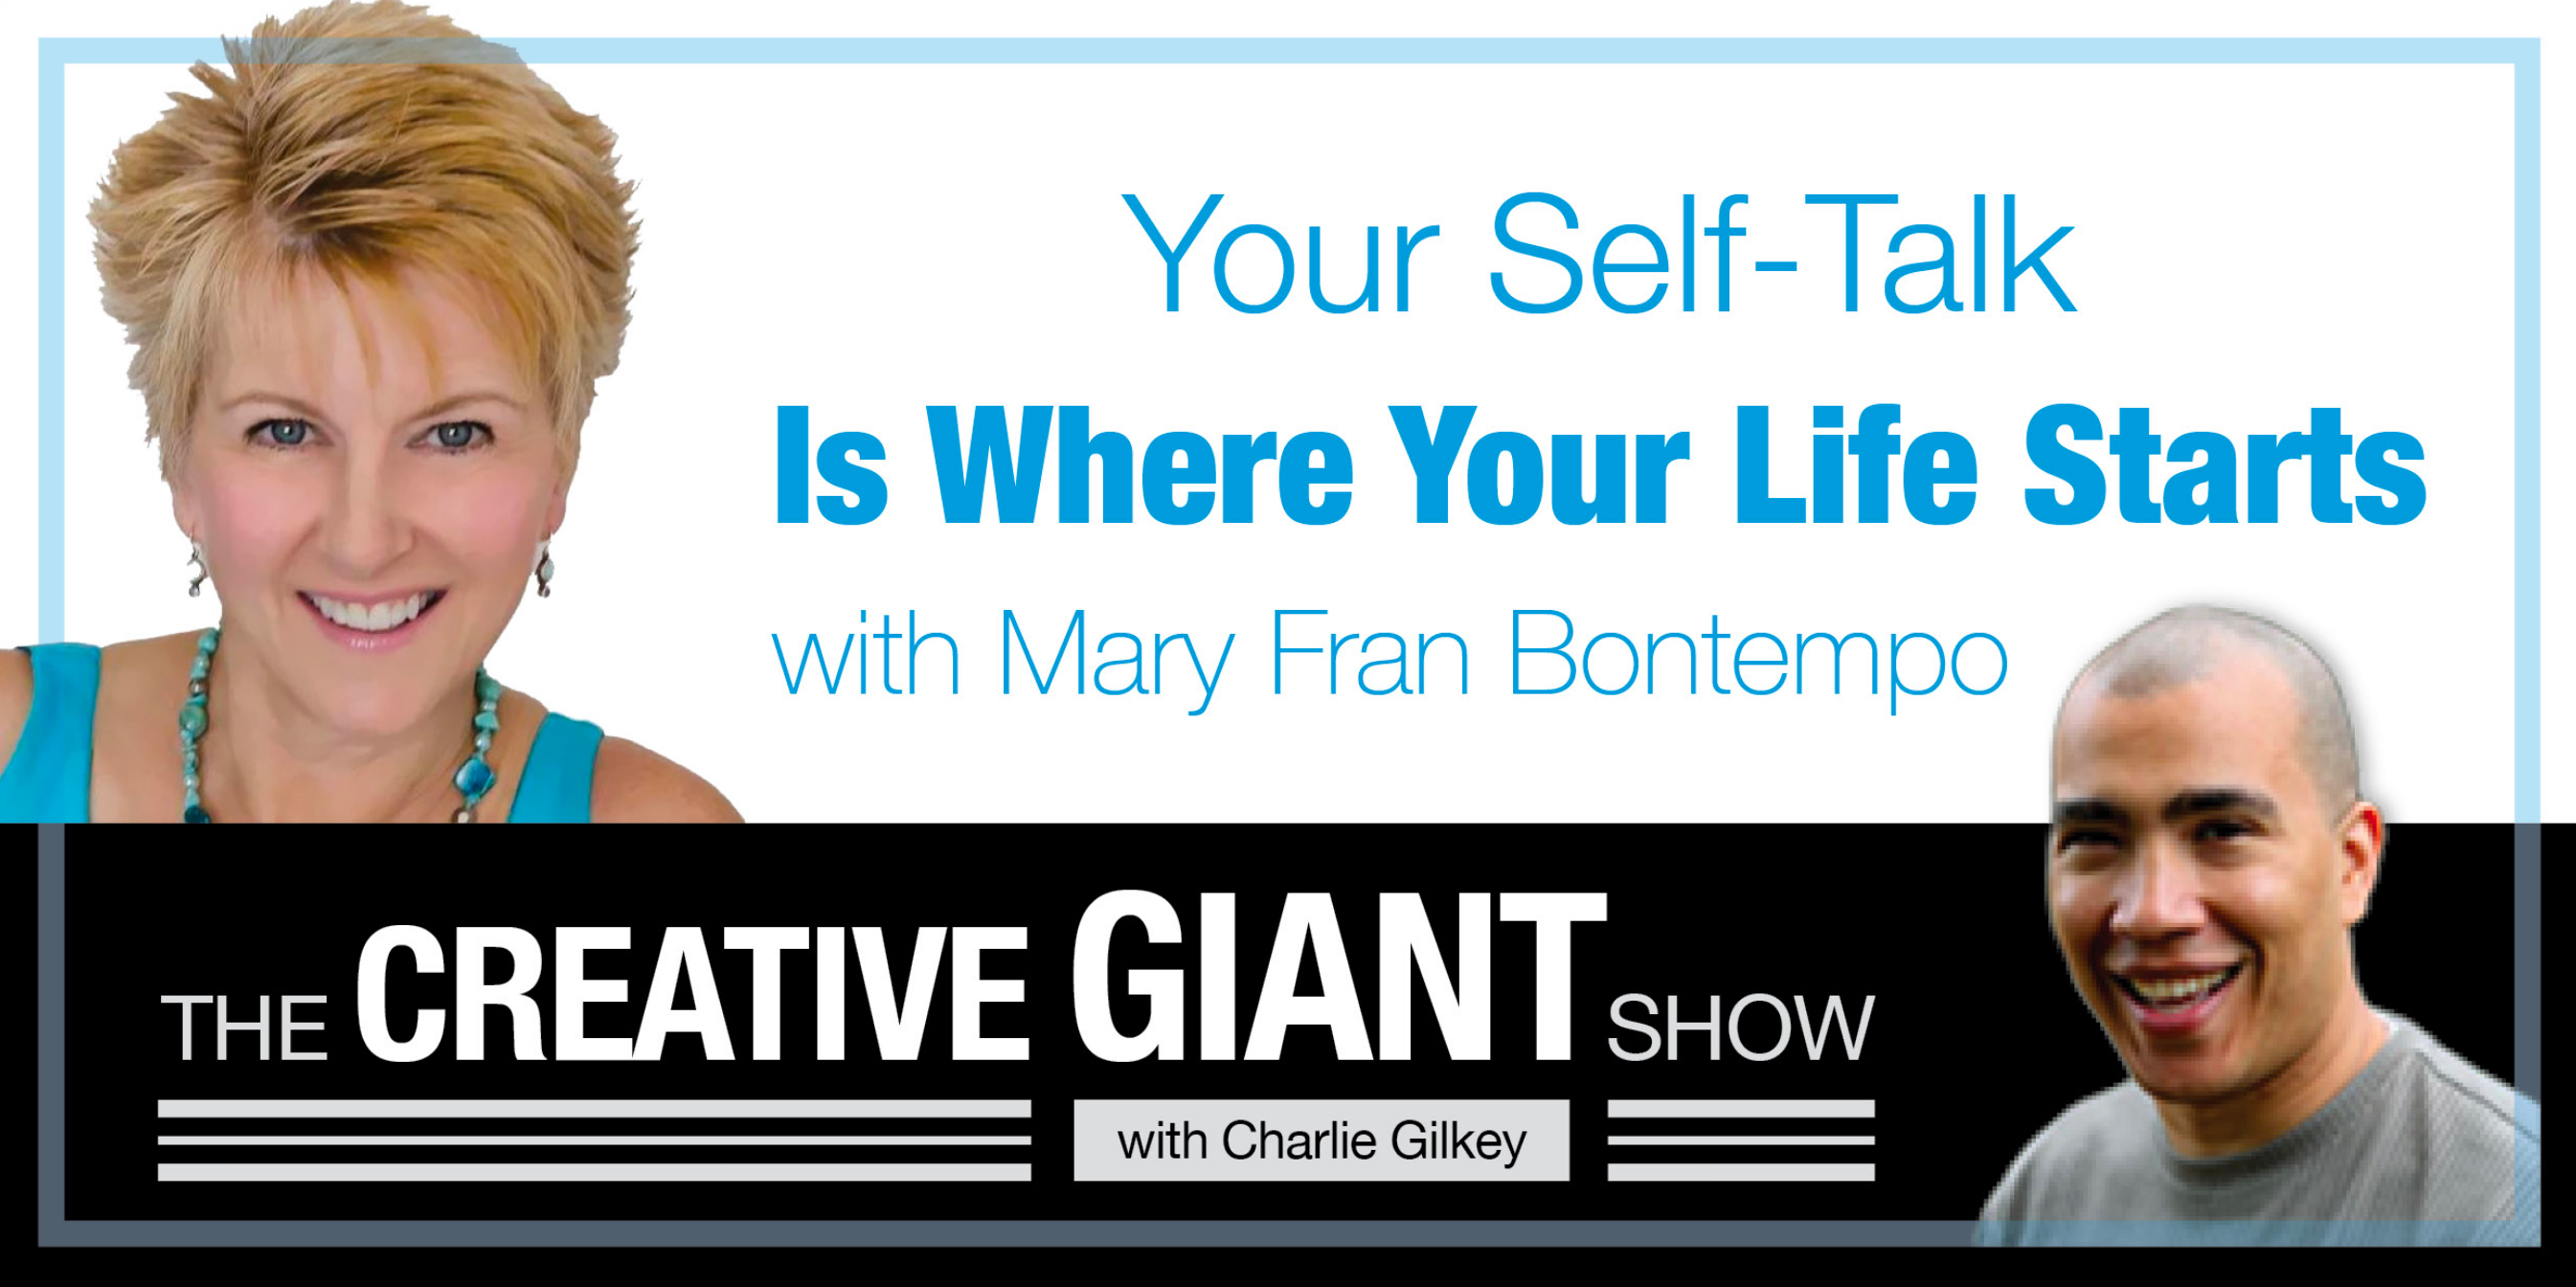 Mary Fran Bontempo on Creative Giant Show with Charles Gilkey